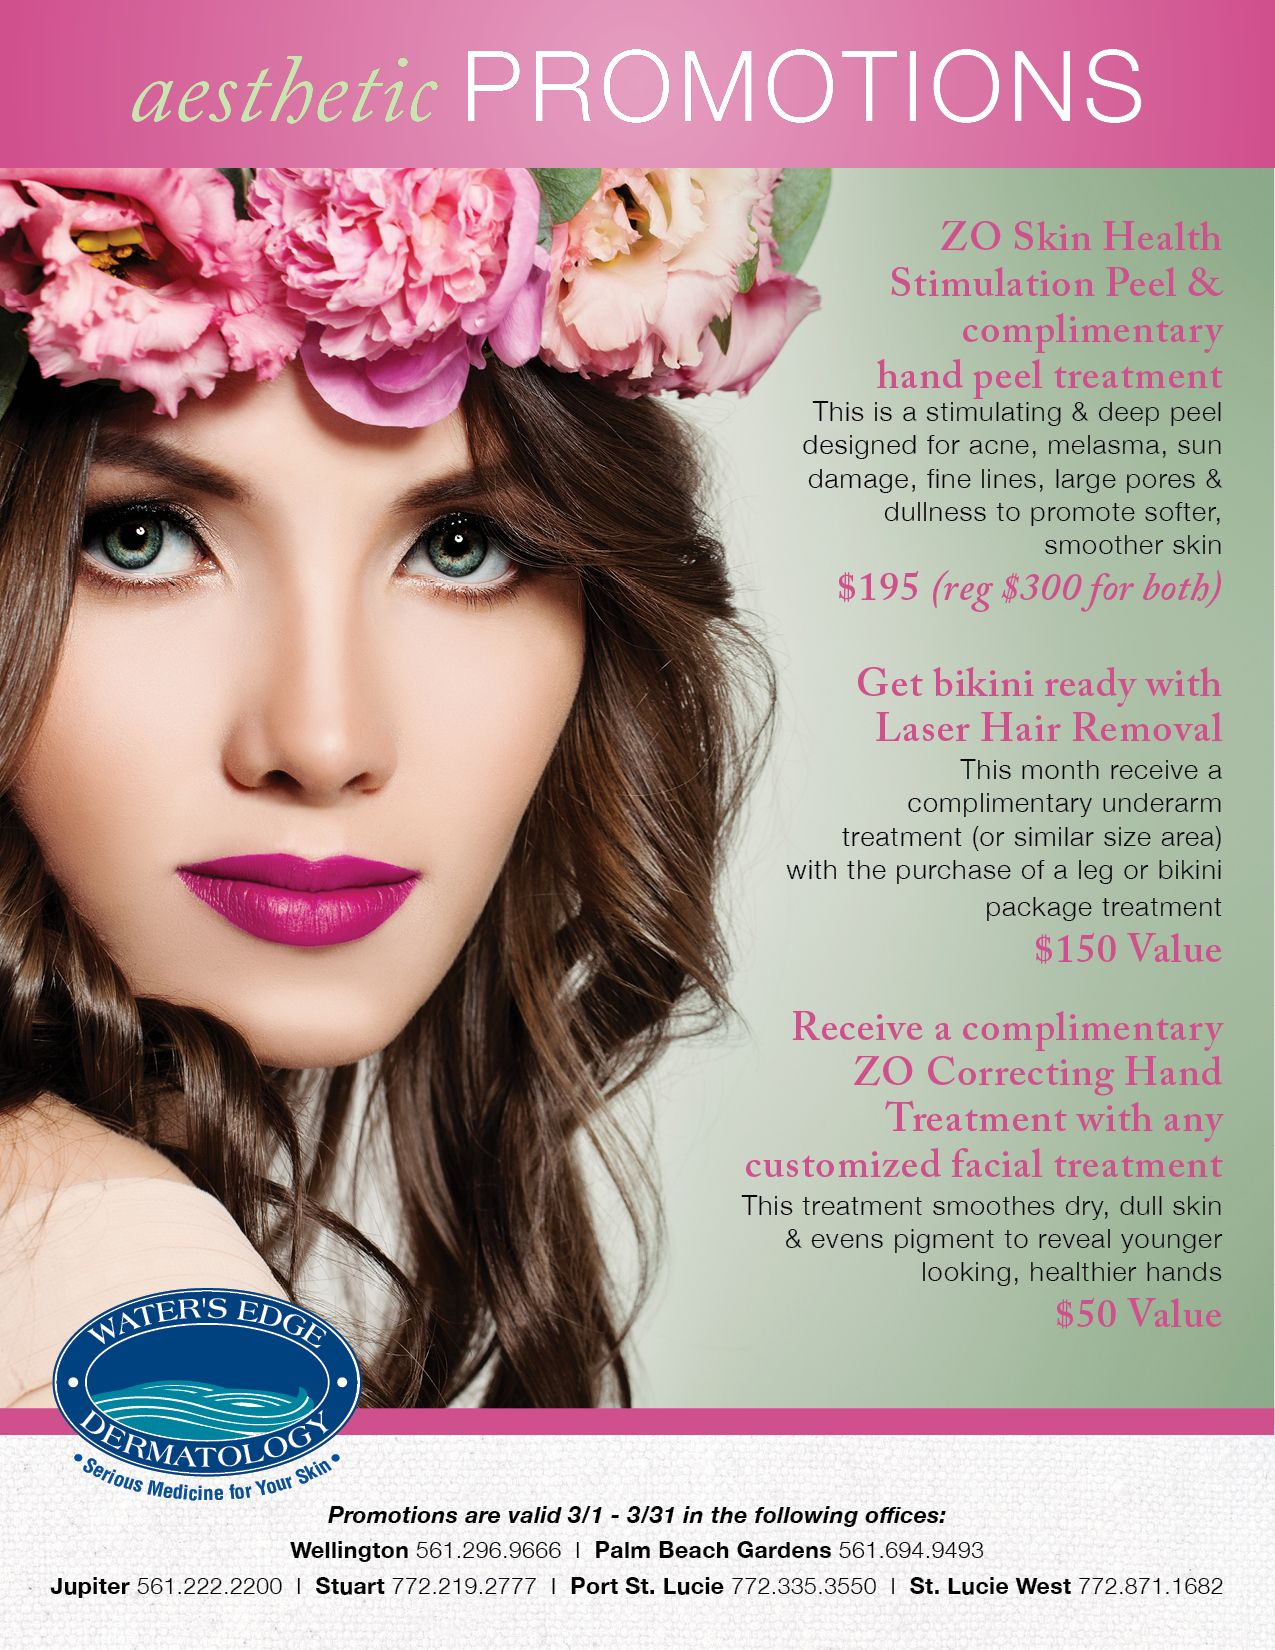 Spring into March with beautiful aesthetic specials at